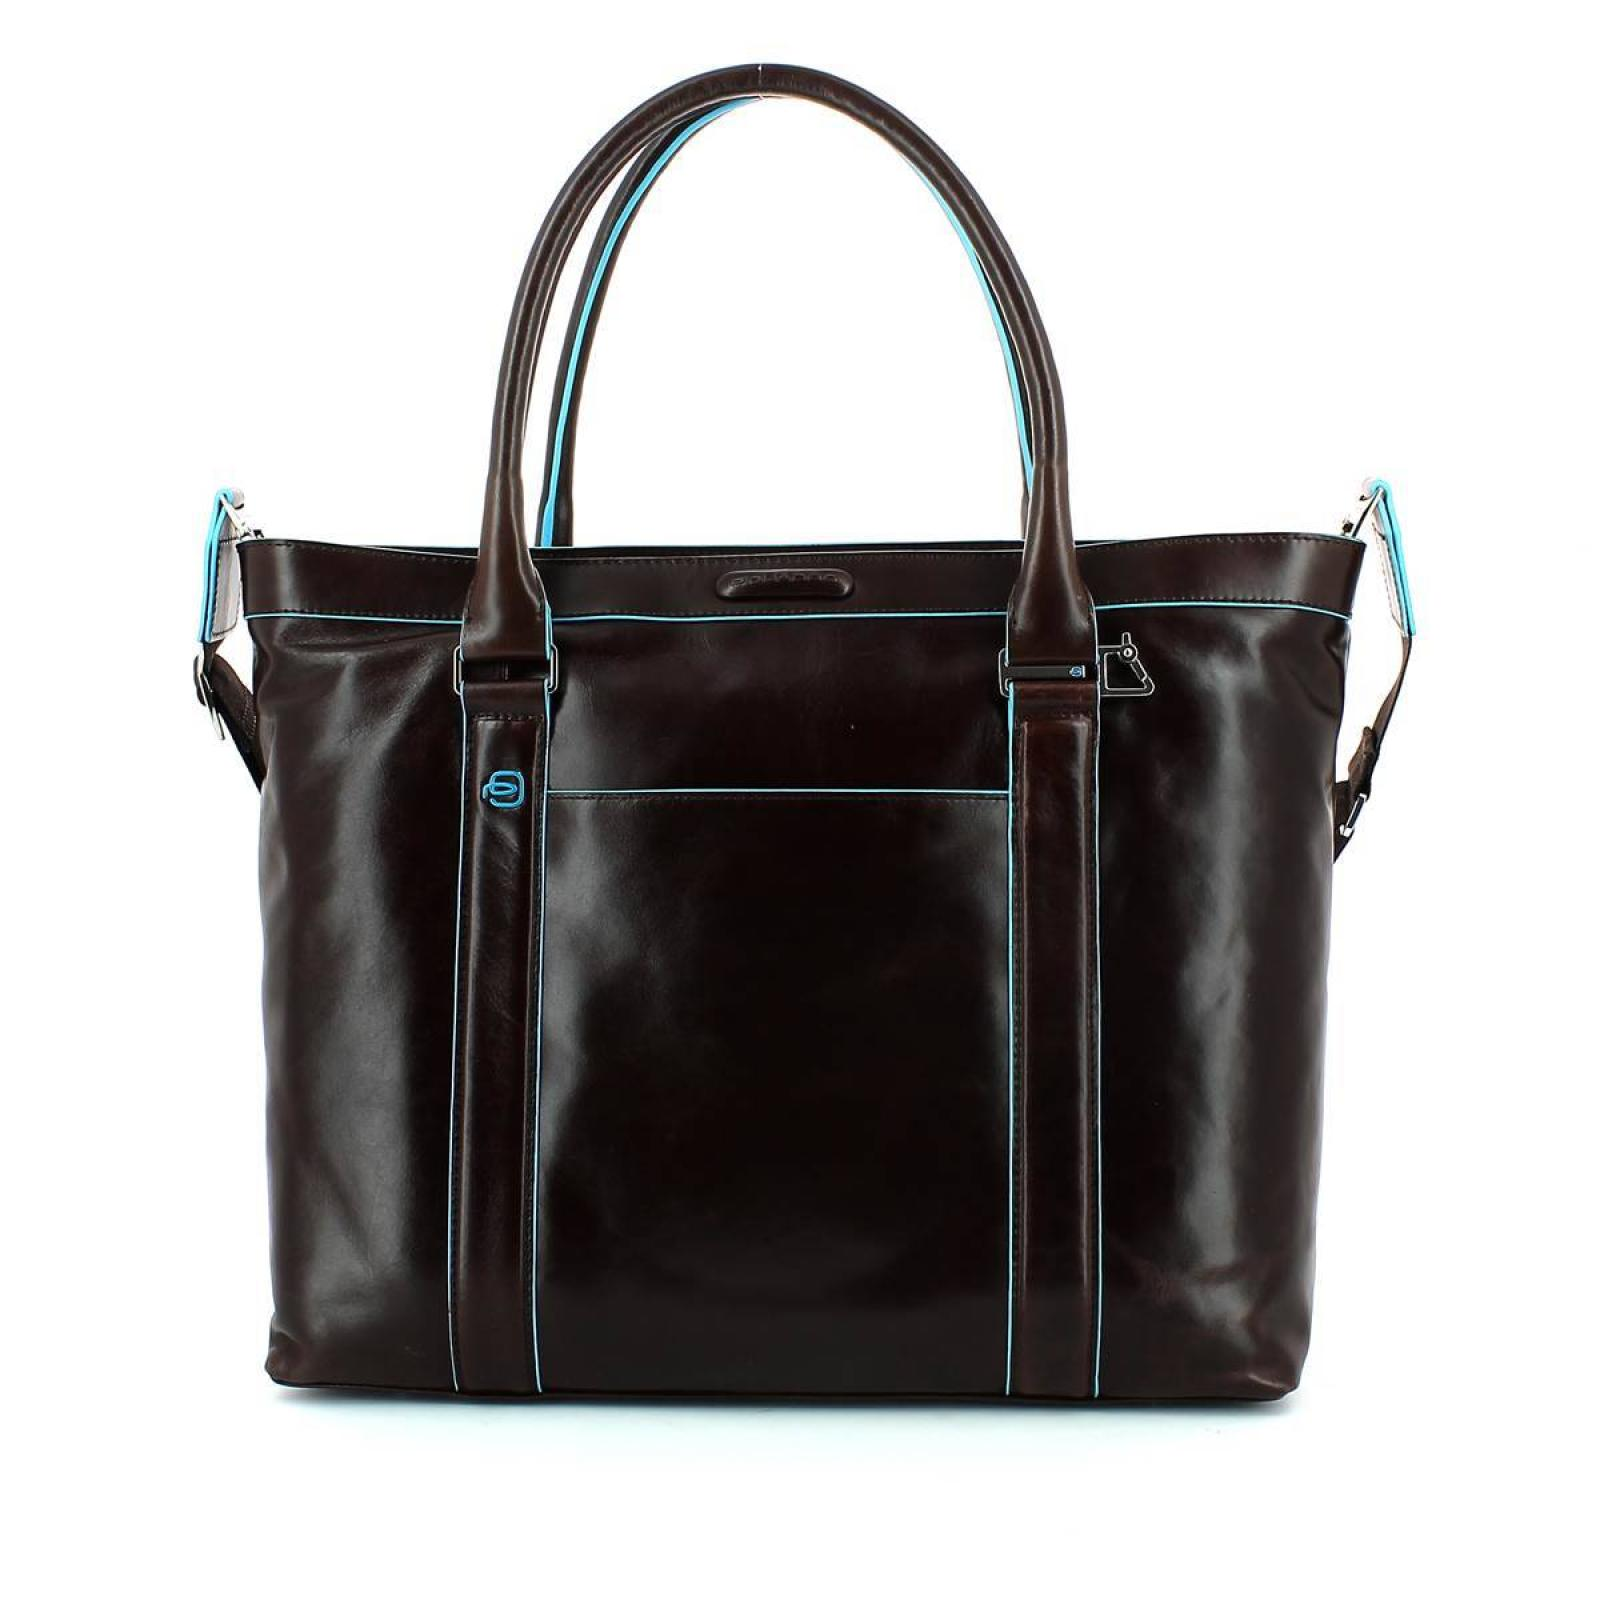 Bluesquare Bag